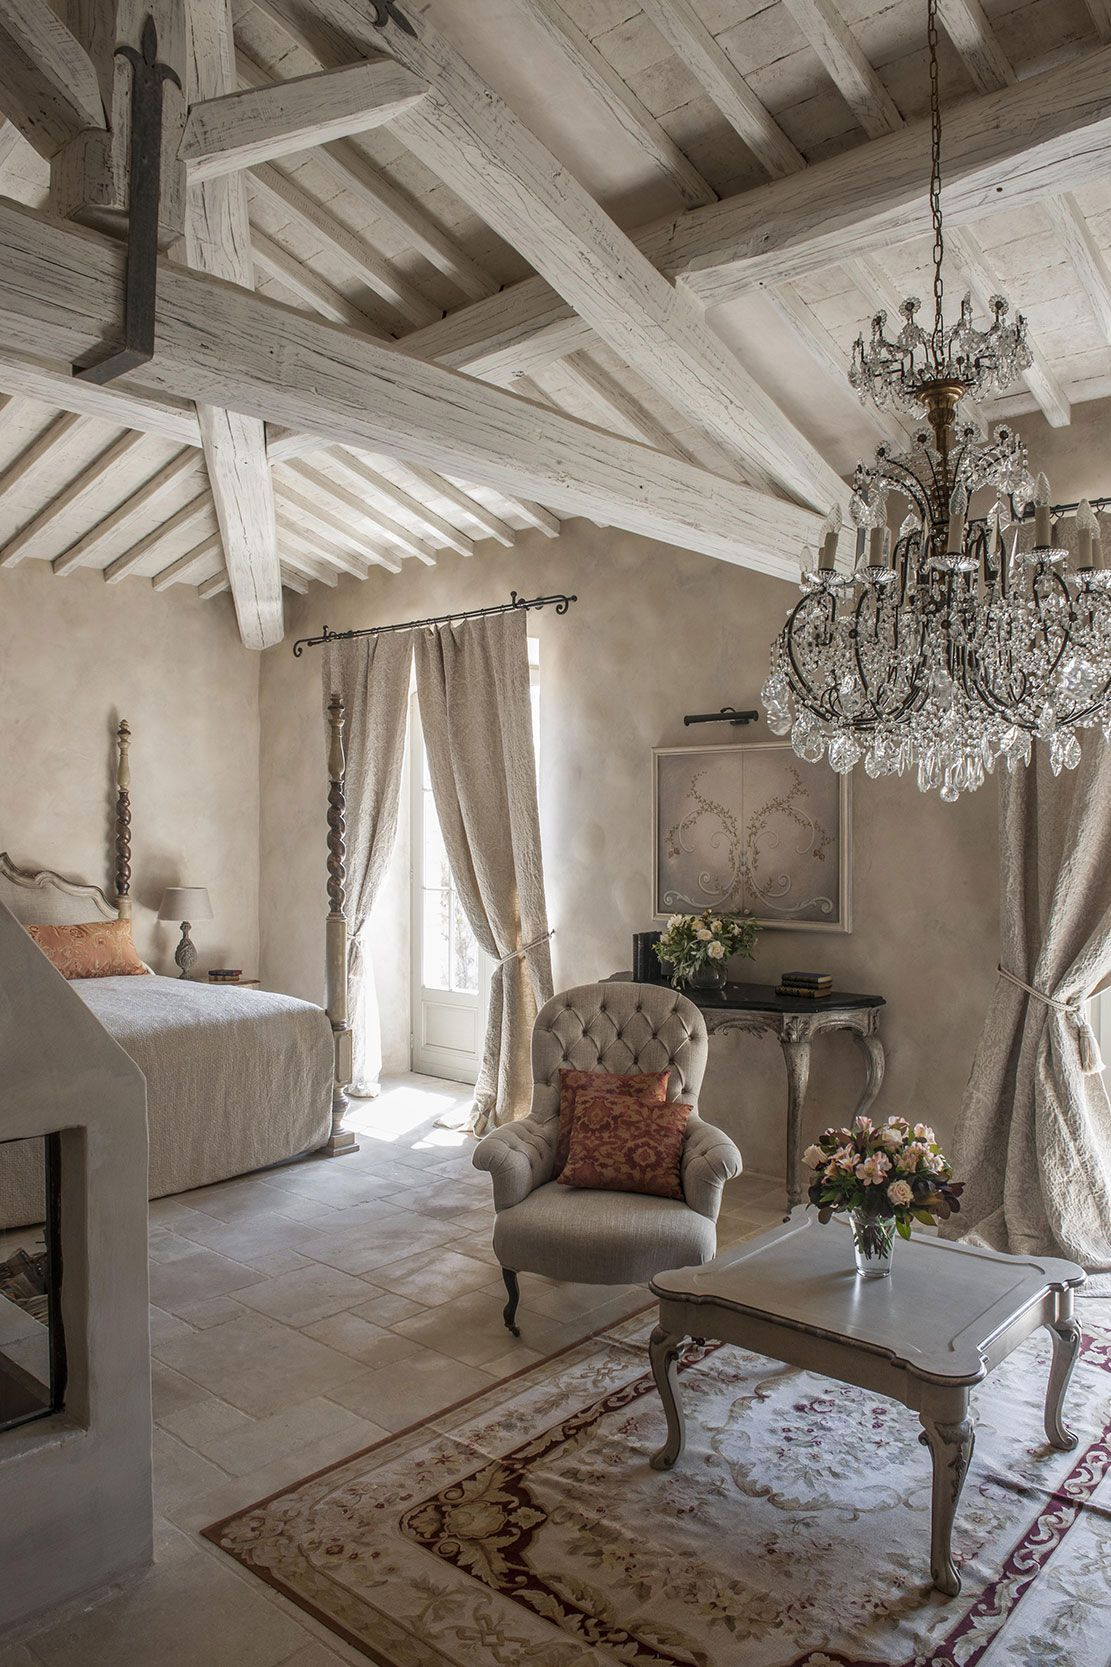 10 Tips For Creating The Most Relaxing French Country Bedroom Ever French Country Bedrooms French Country Living Room Country Style Interiors